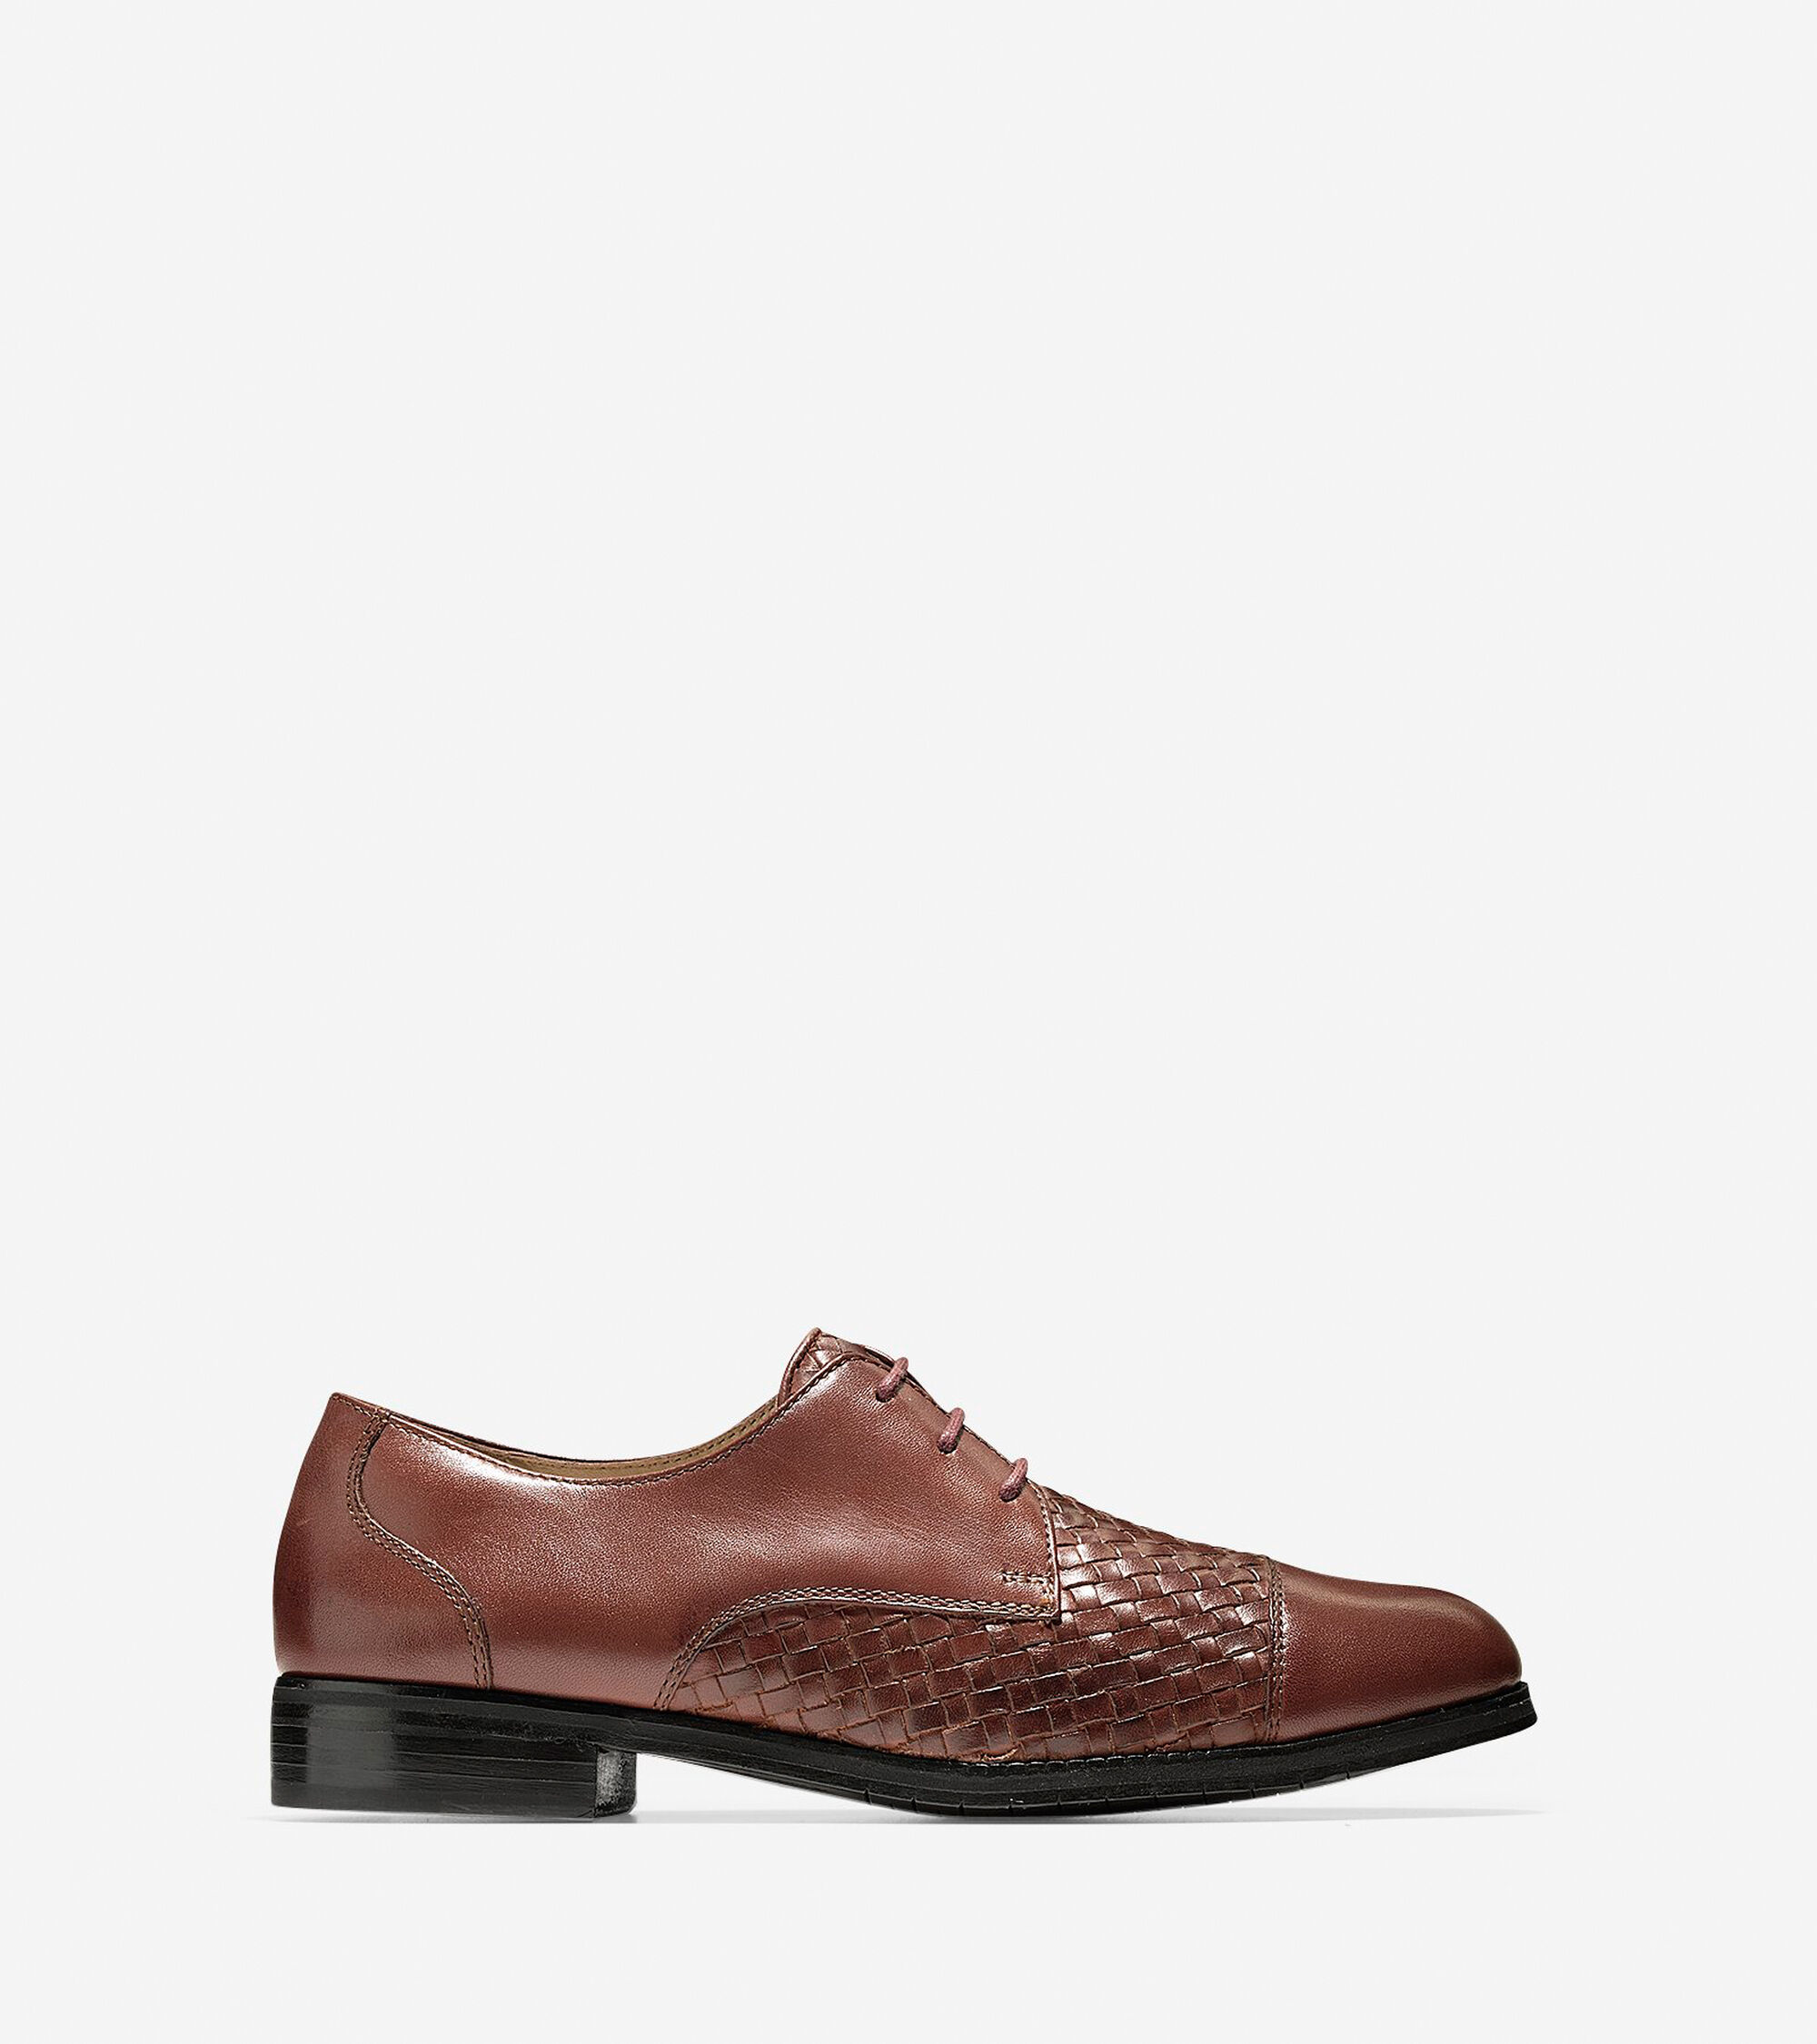 b59d9880864 Women s Jagger Grand Weave Oxfords in Sequoia